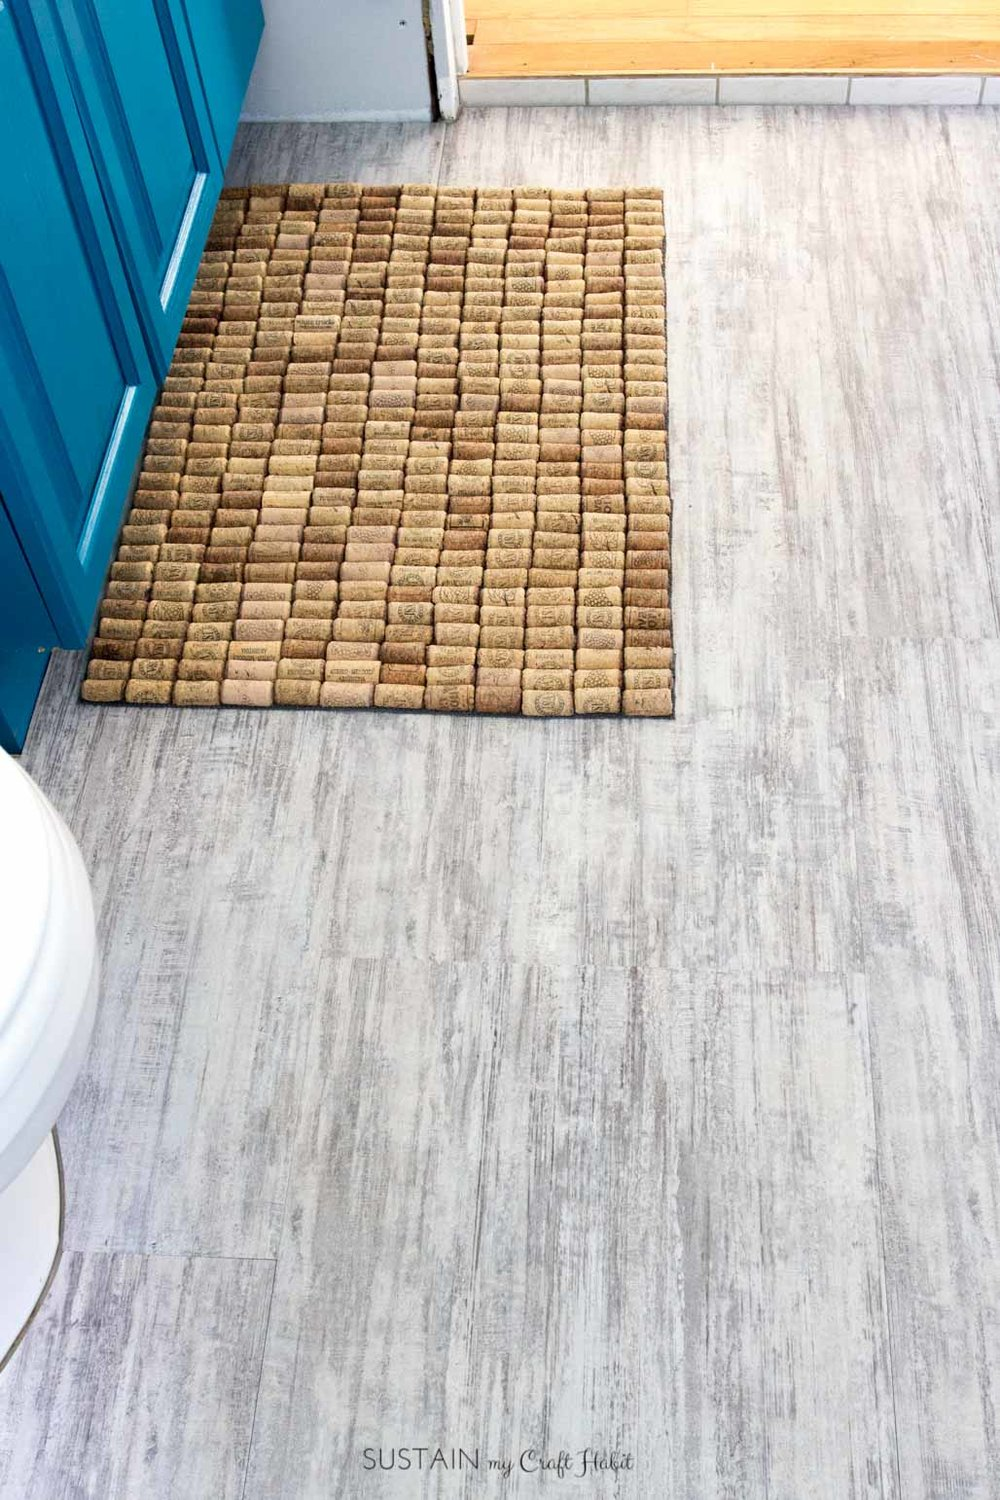 DIY cork bath mat! A beautiful and purposeful way of using up collected wine corks. Full step-by-step tutorial and tips for cutting those corks included!